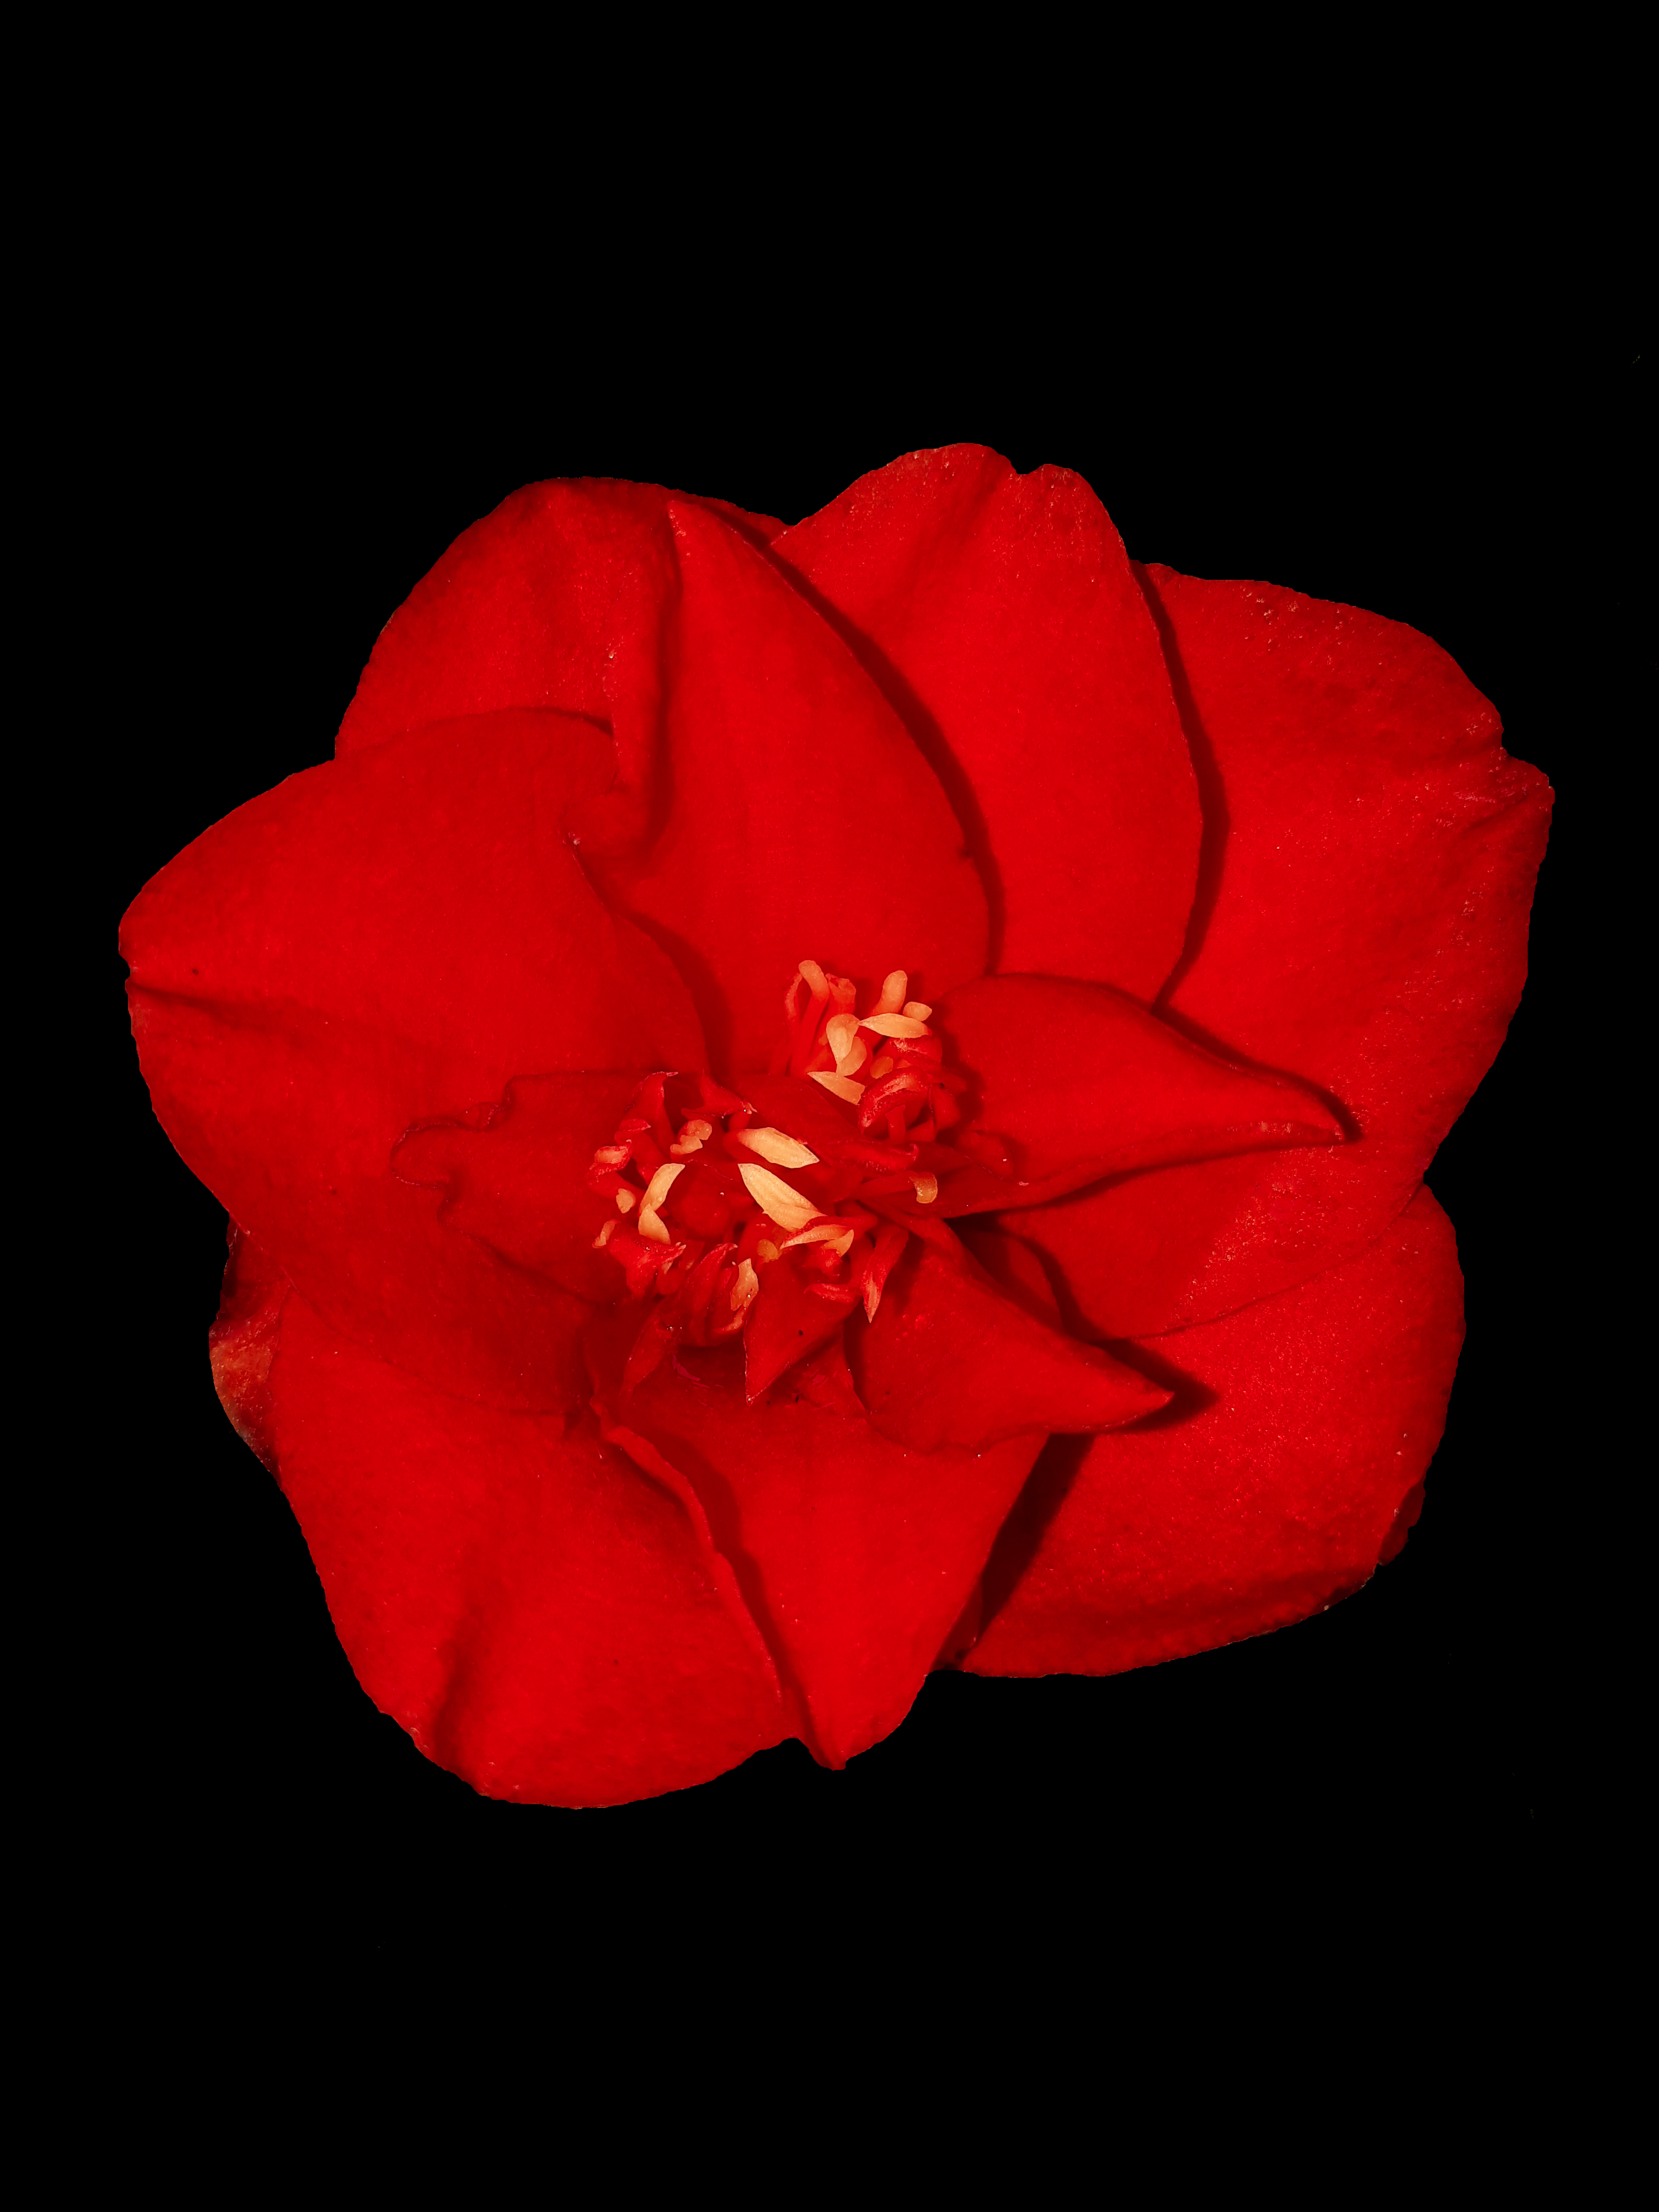 Red Camelia Flower on Black